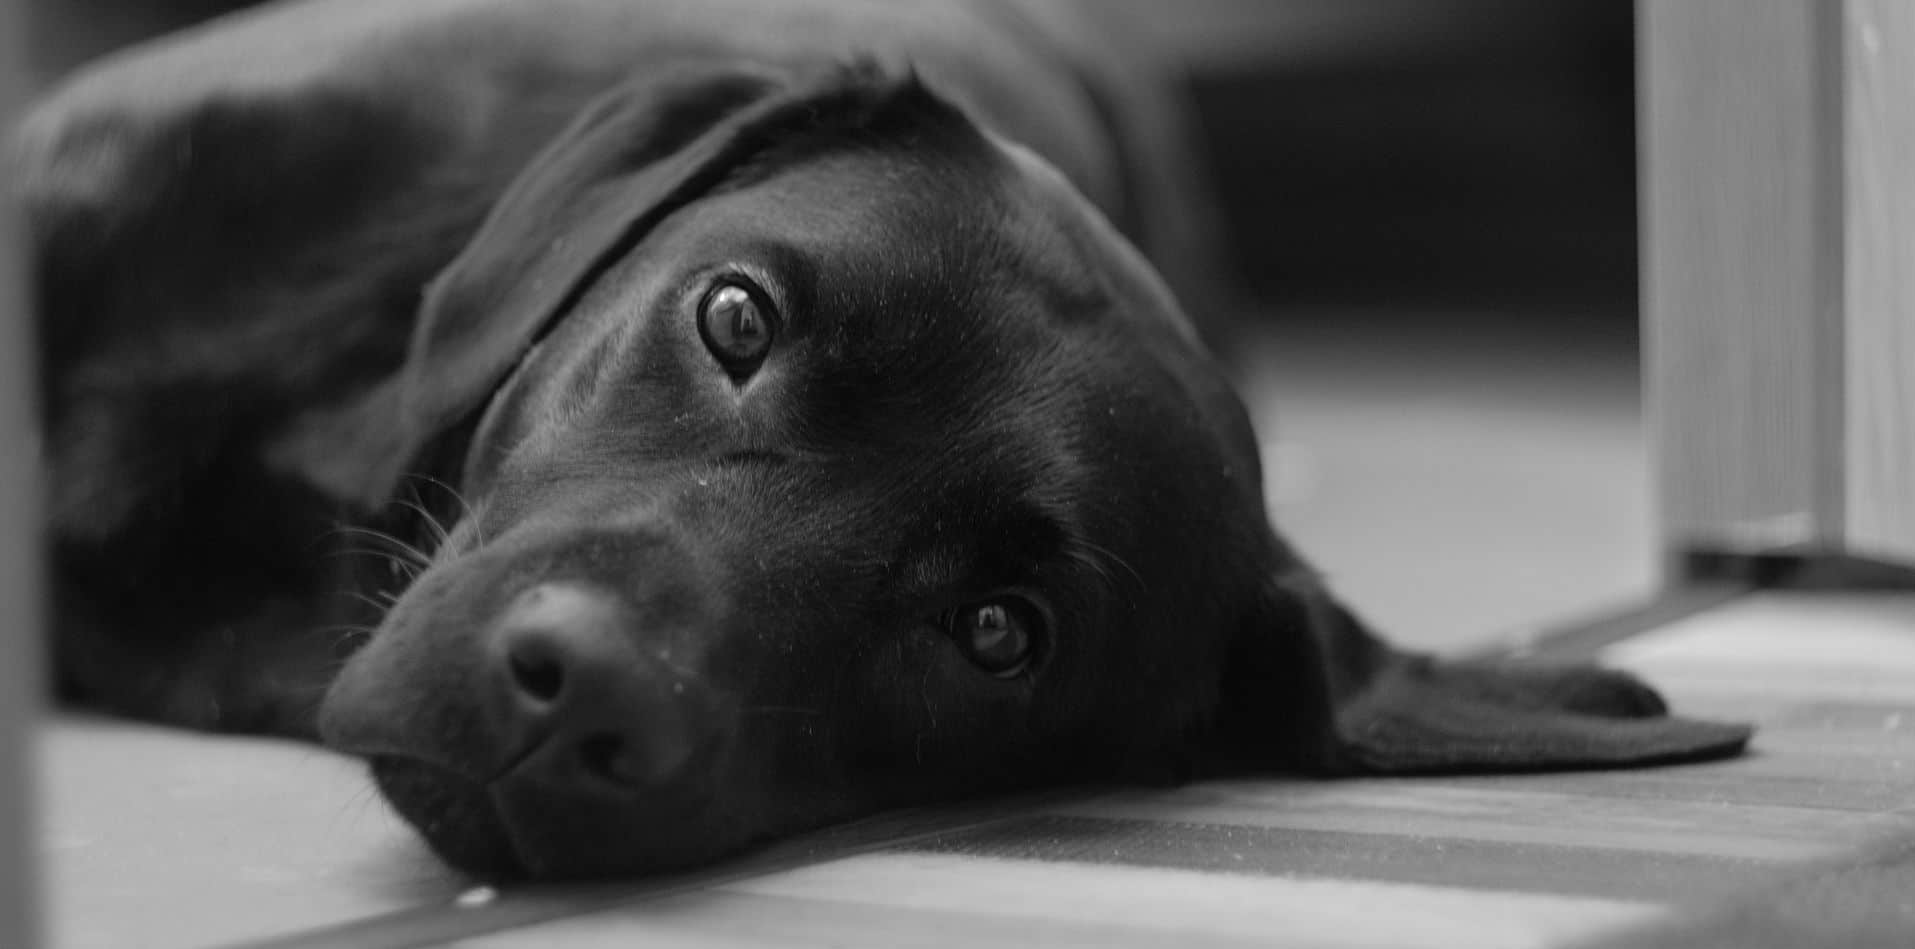 What are some natural remedies for anxiety in dogs?